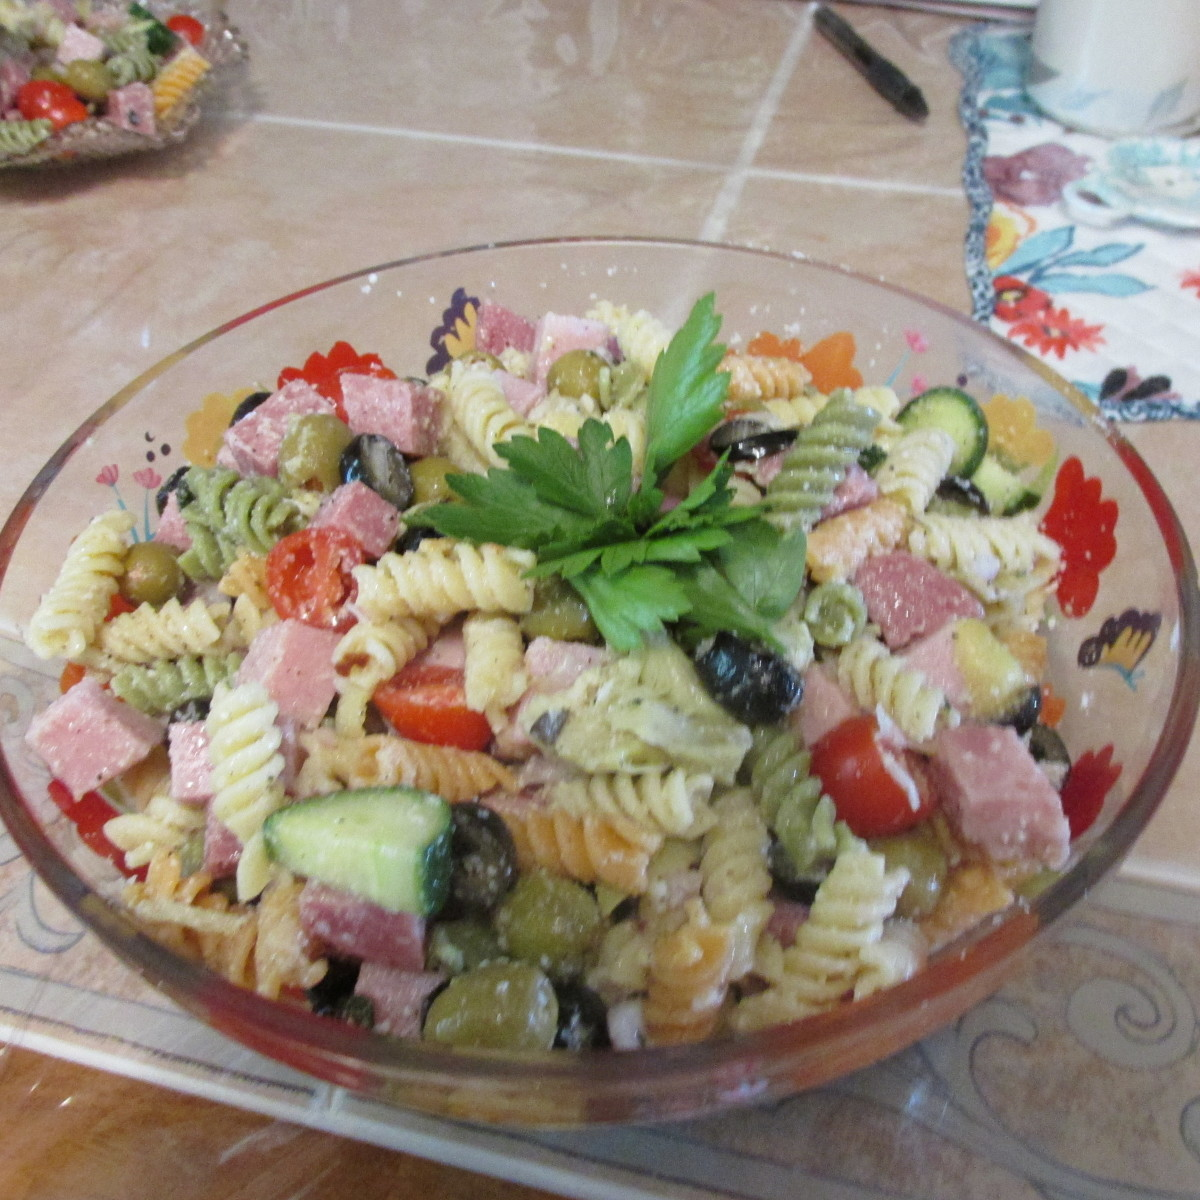 Salad all ready to be eaten.